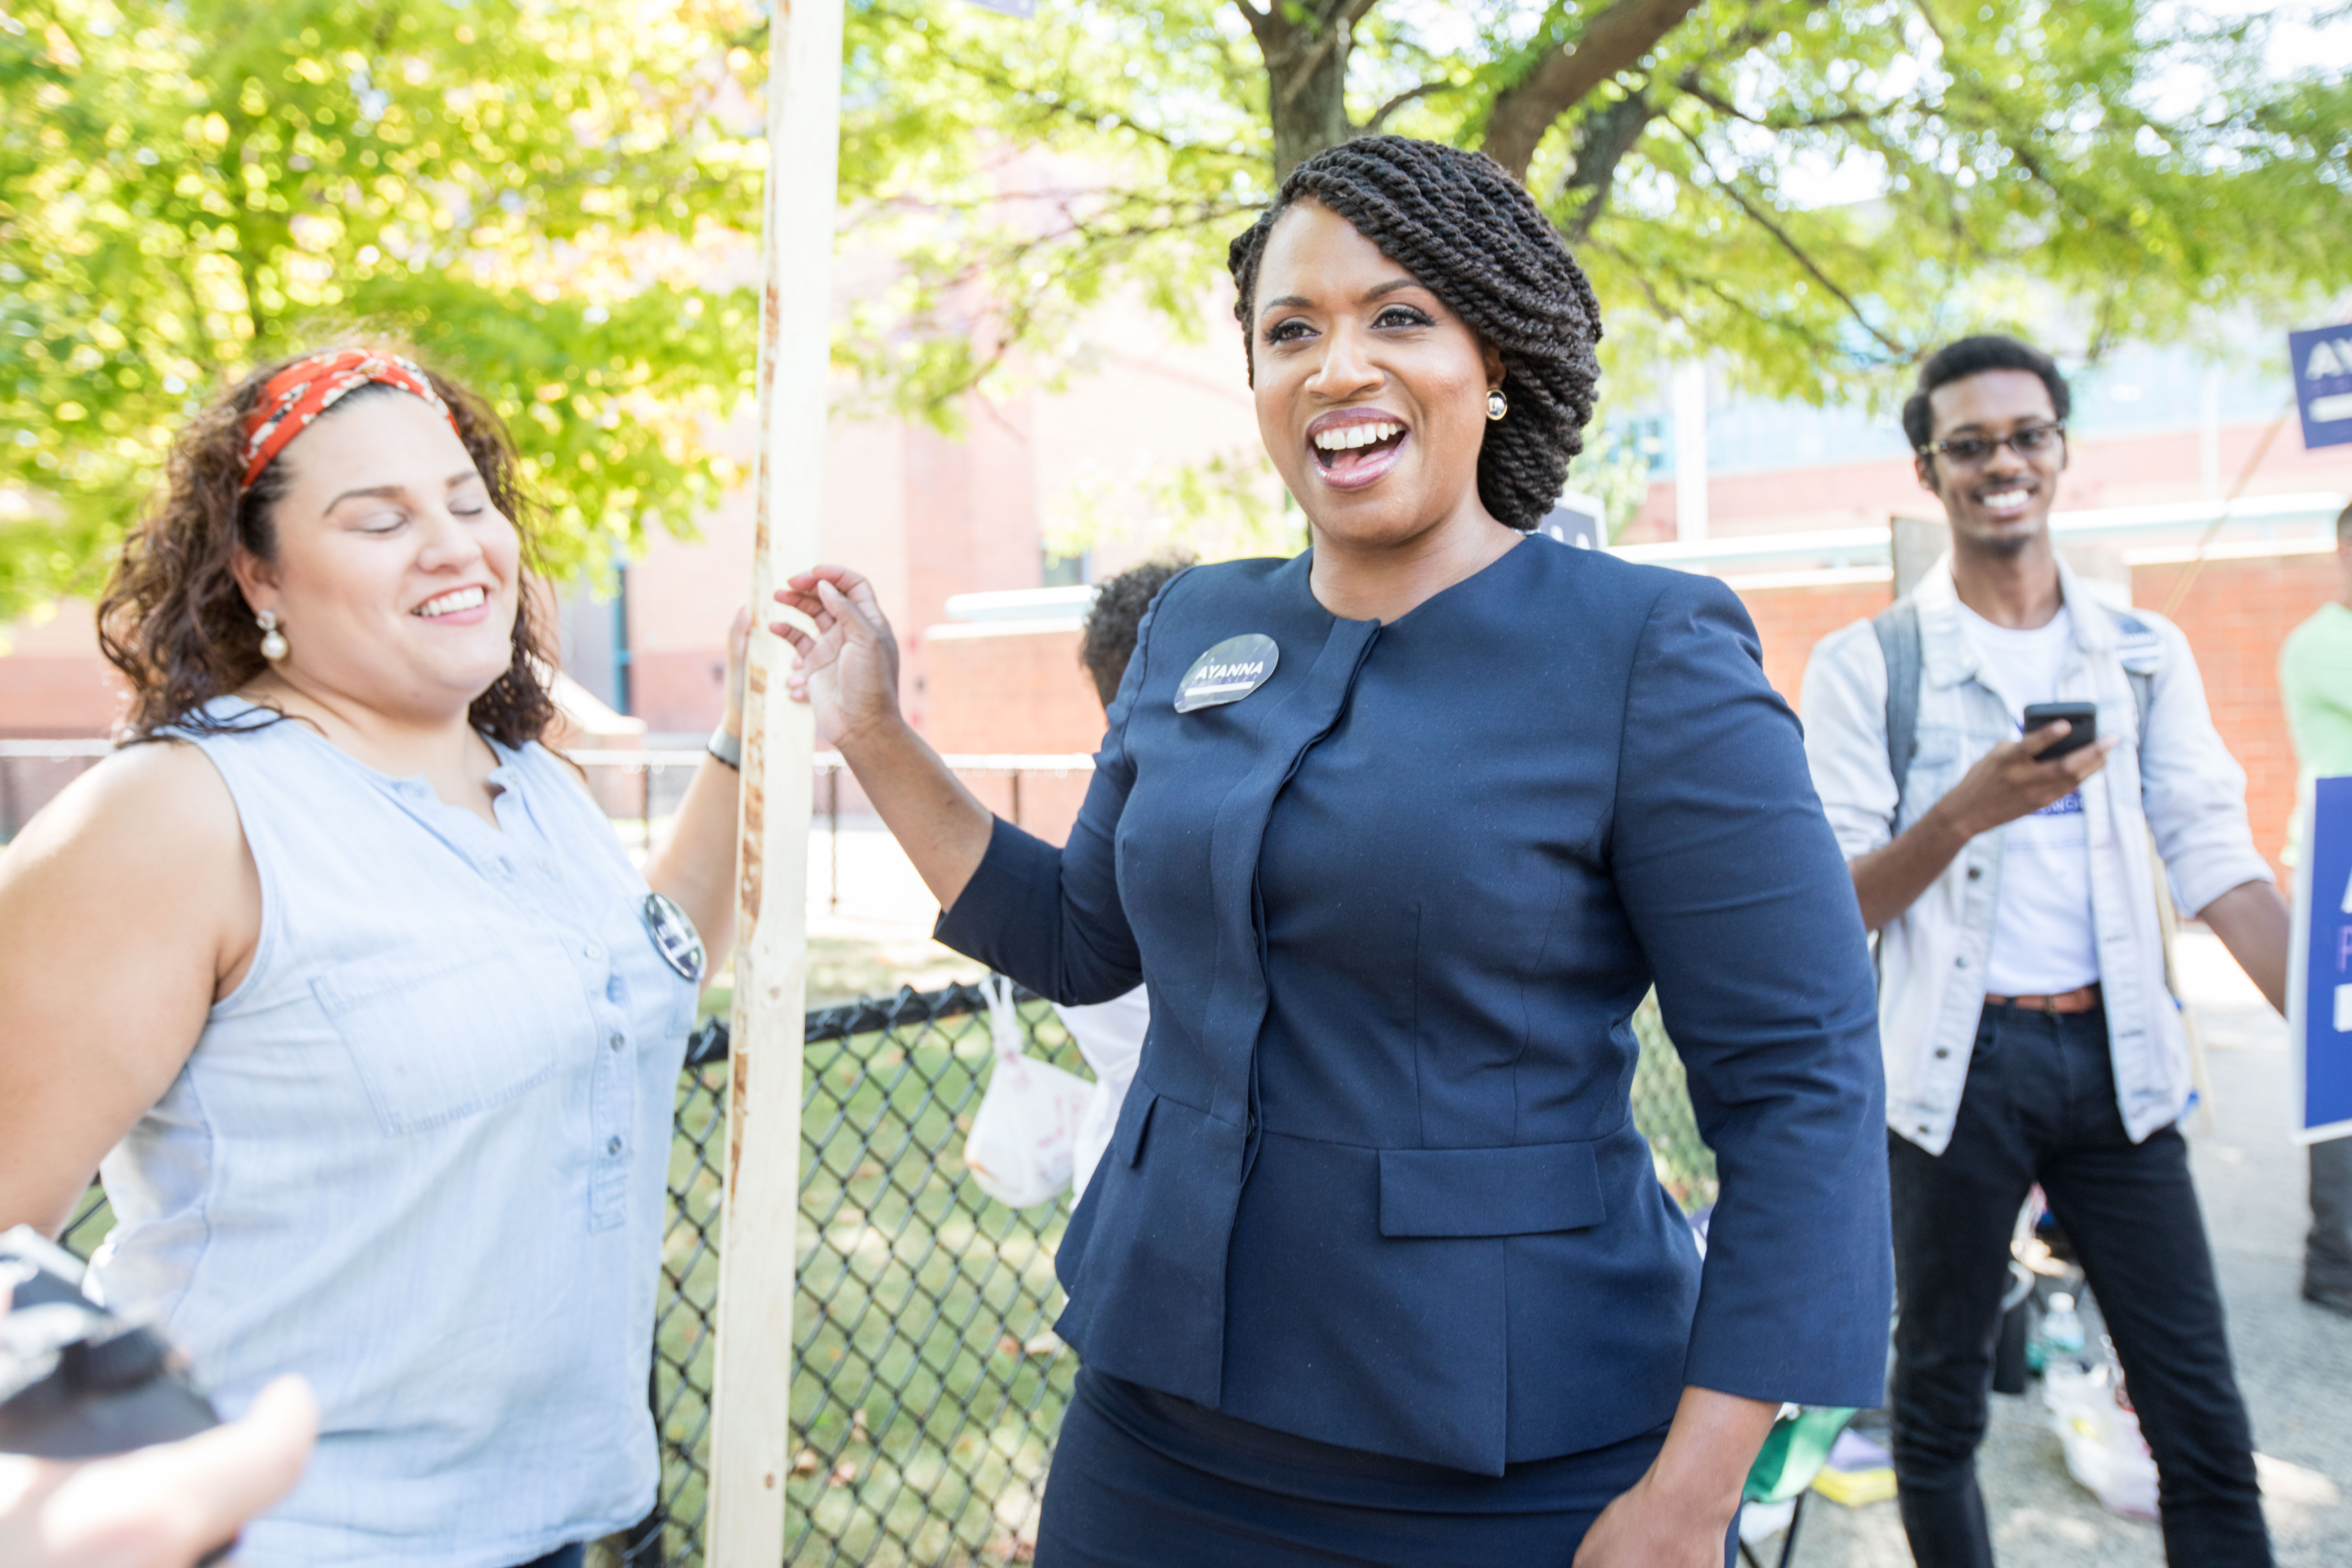 Boston City Councilwomen And House Democratic Candidate Ayanna Pressley Campaigns On Primary Day